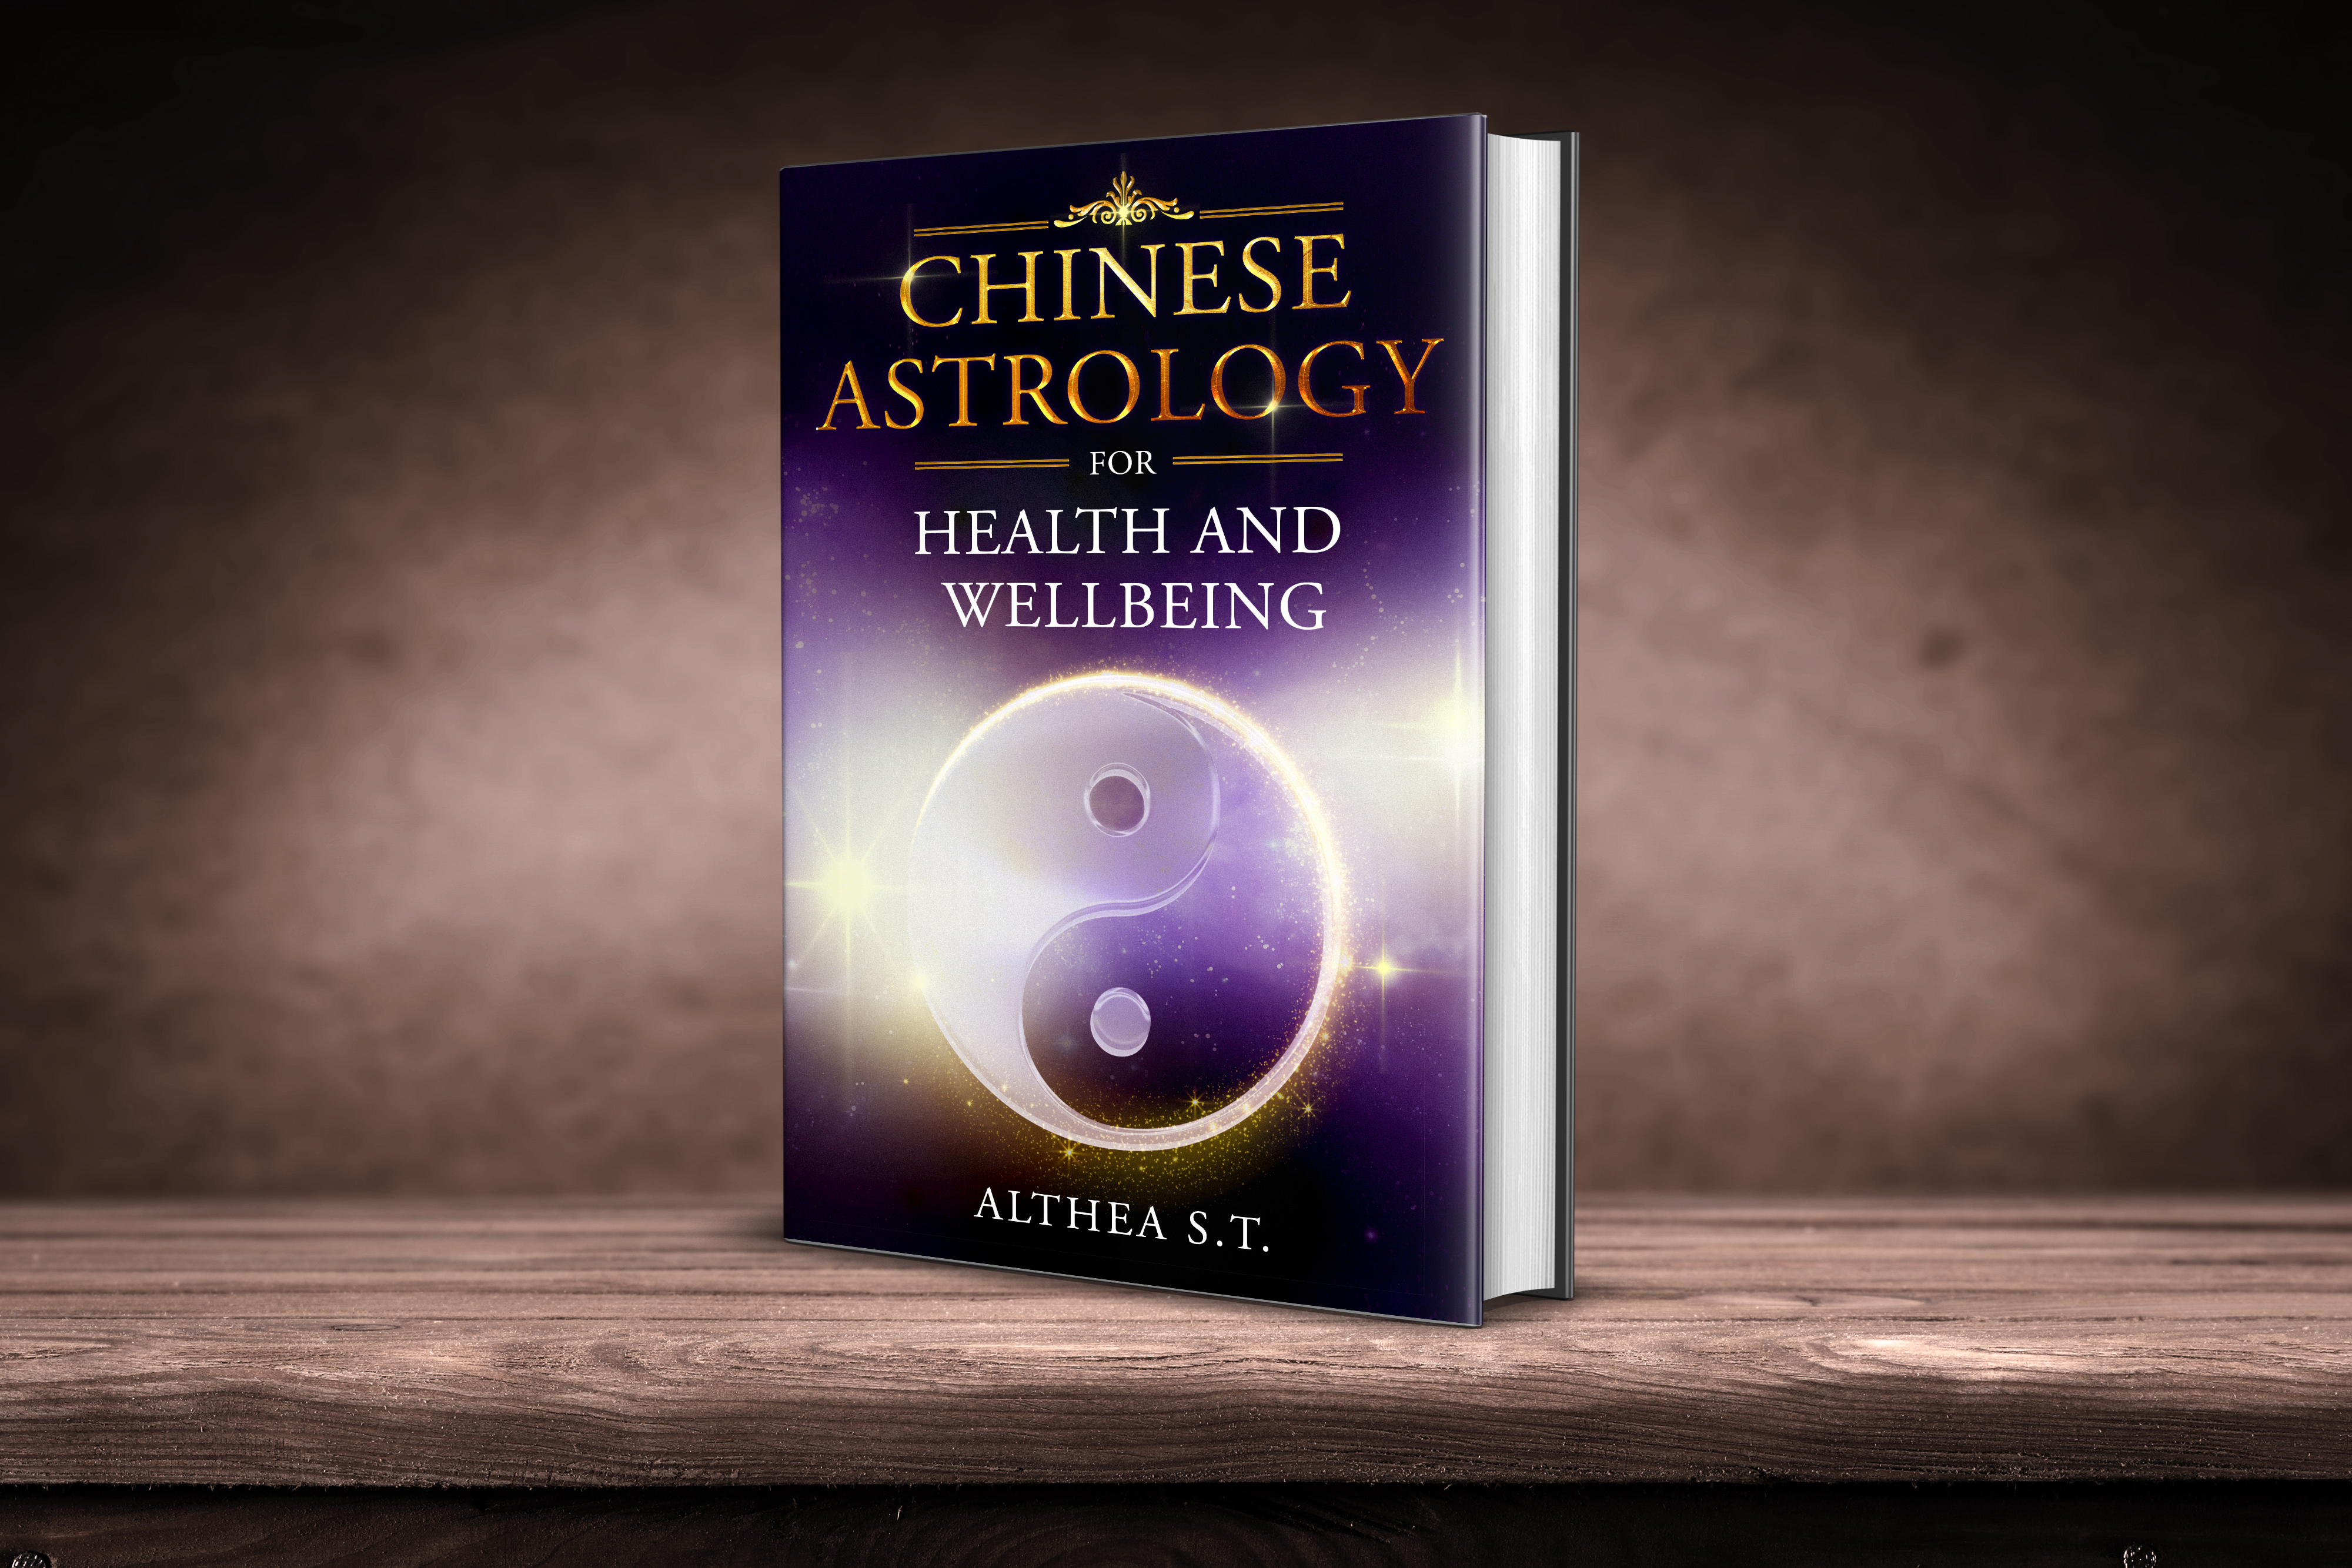 Chinese astrology for health